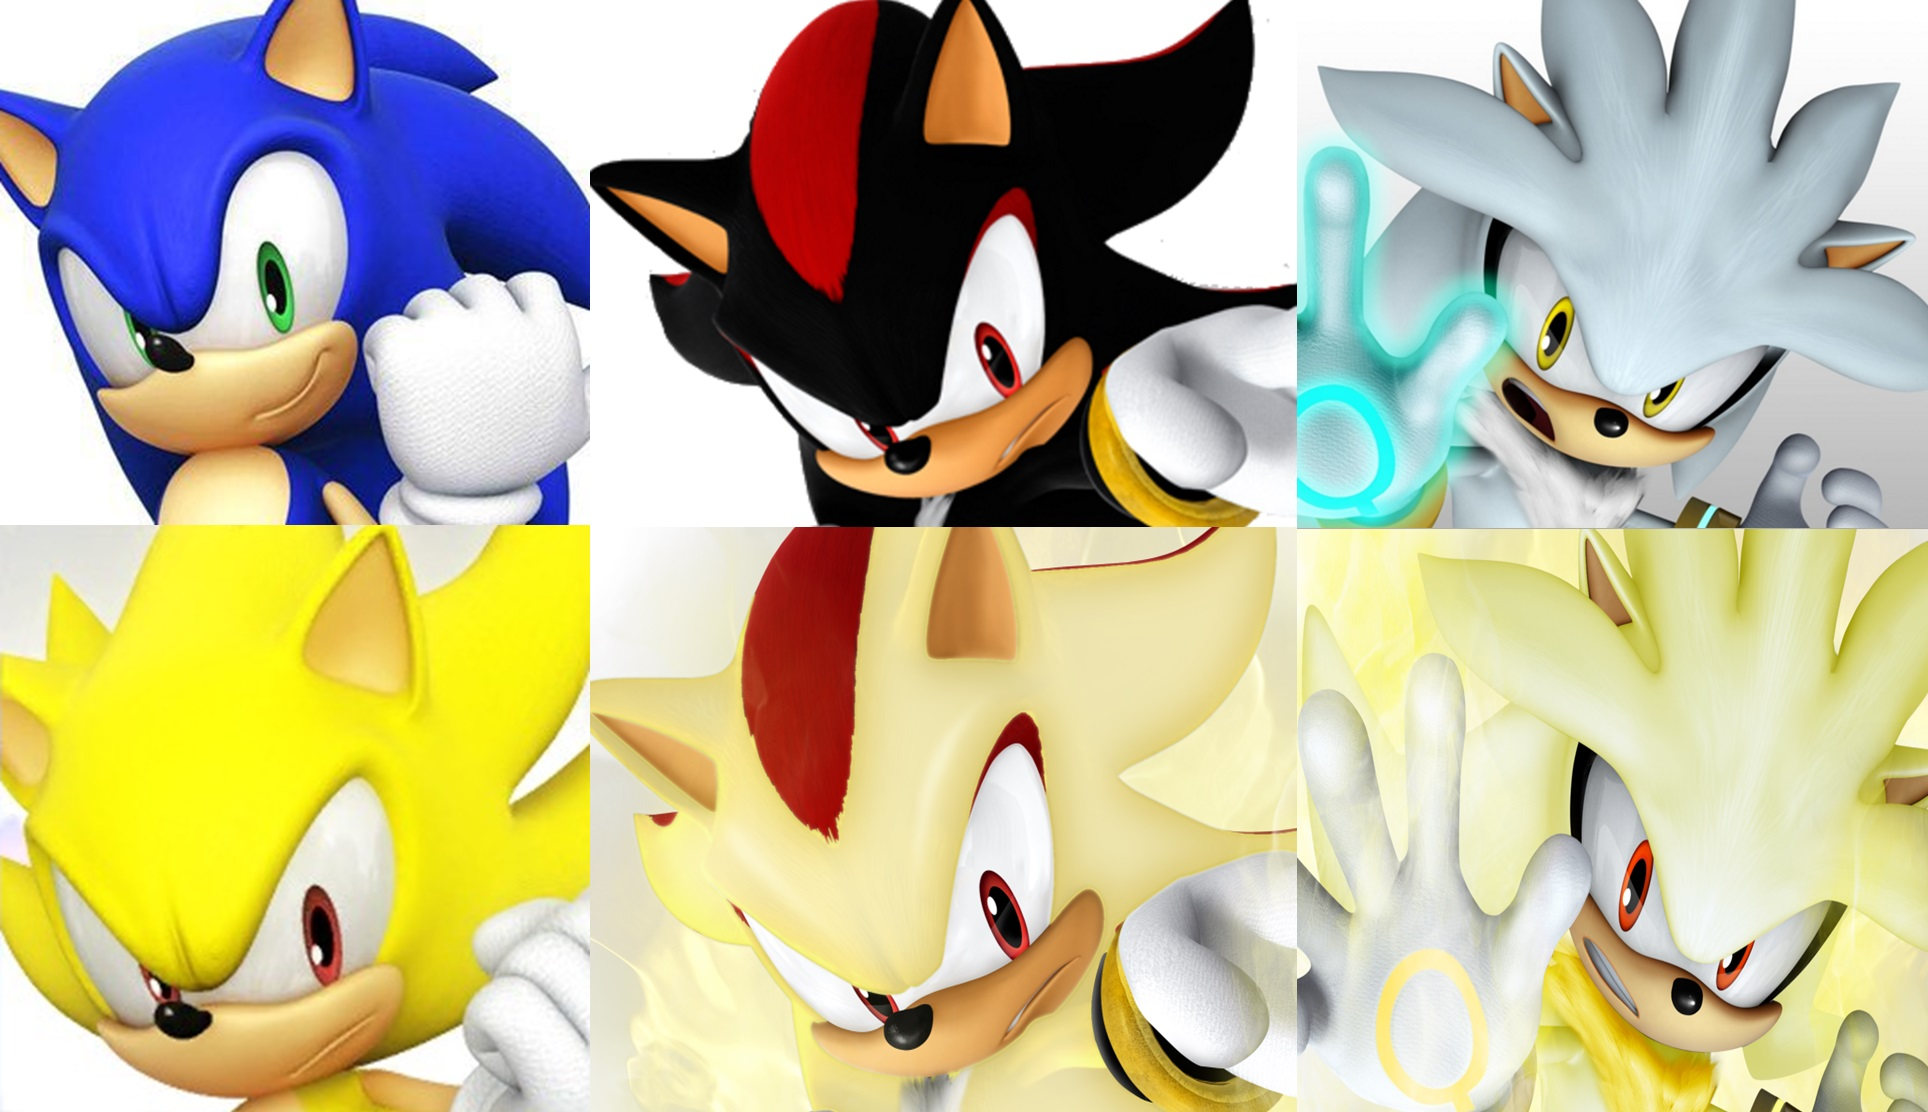 Sonic Shadow And Silver Super Forms Same Pose Sega Sonic Team Sonic Shadow And Silver Photo 40068240 Fanpop